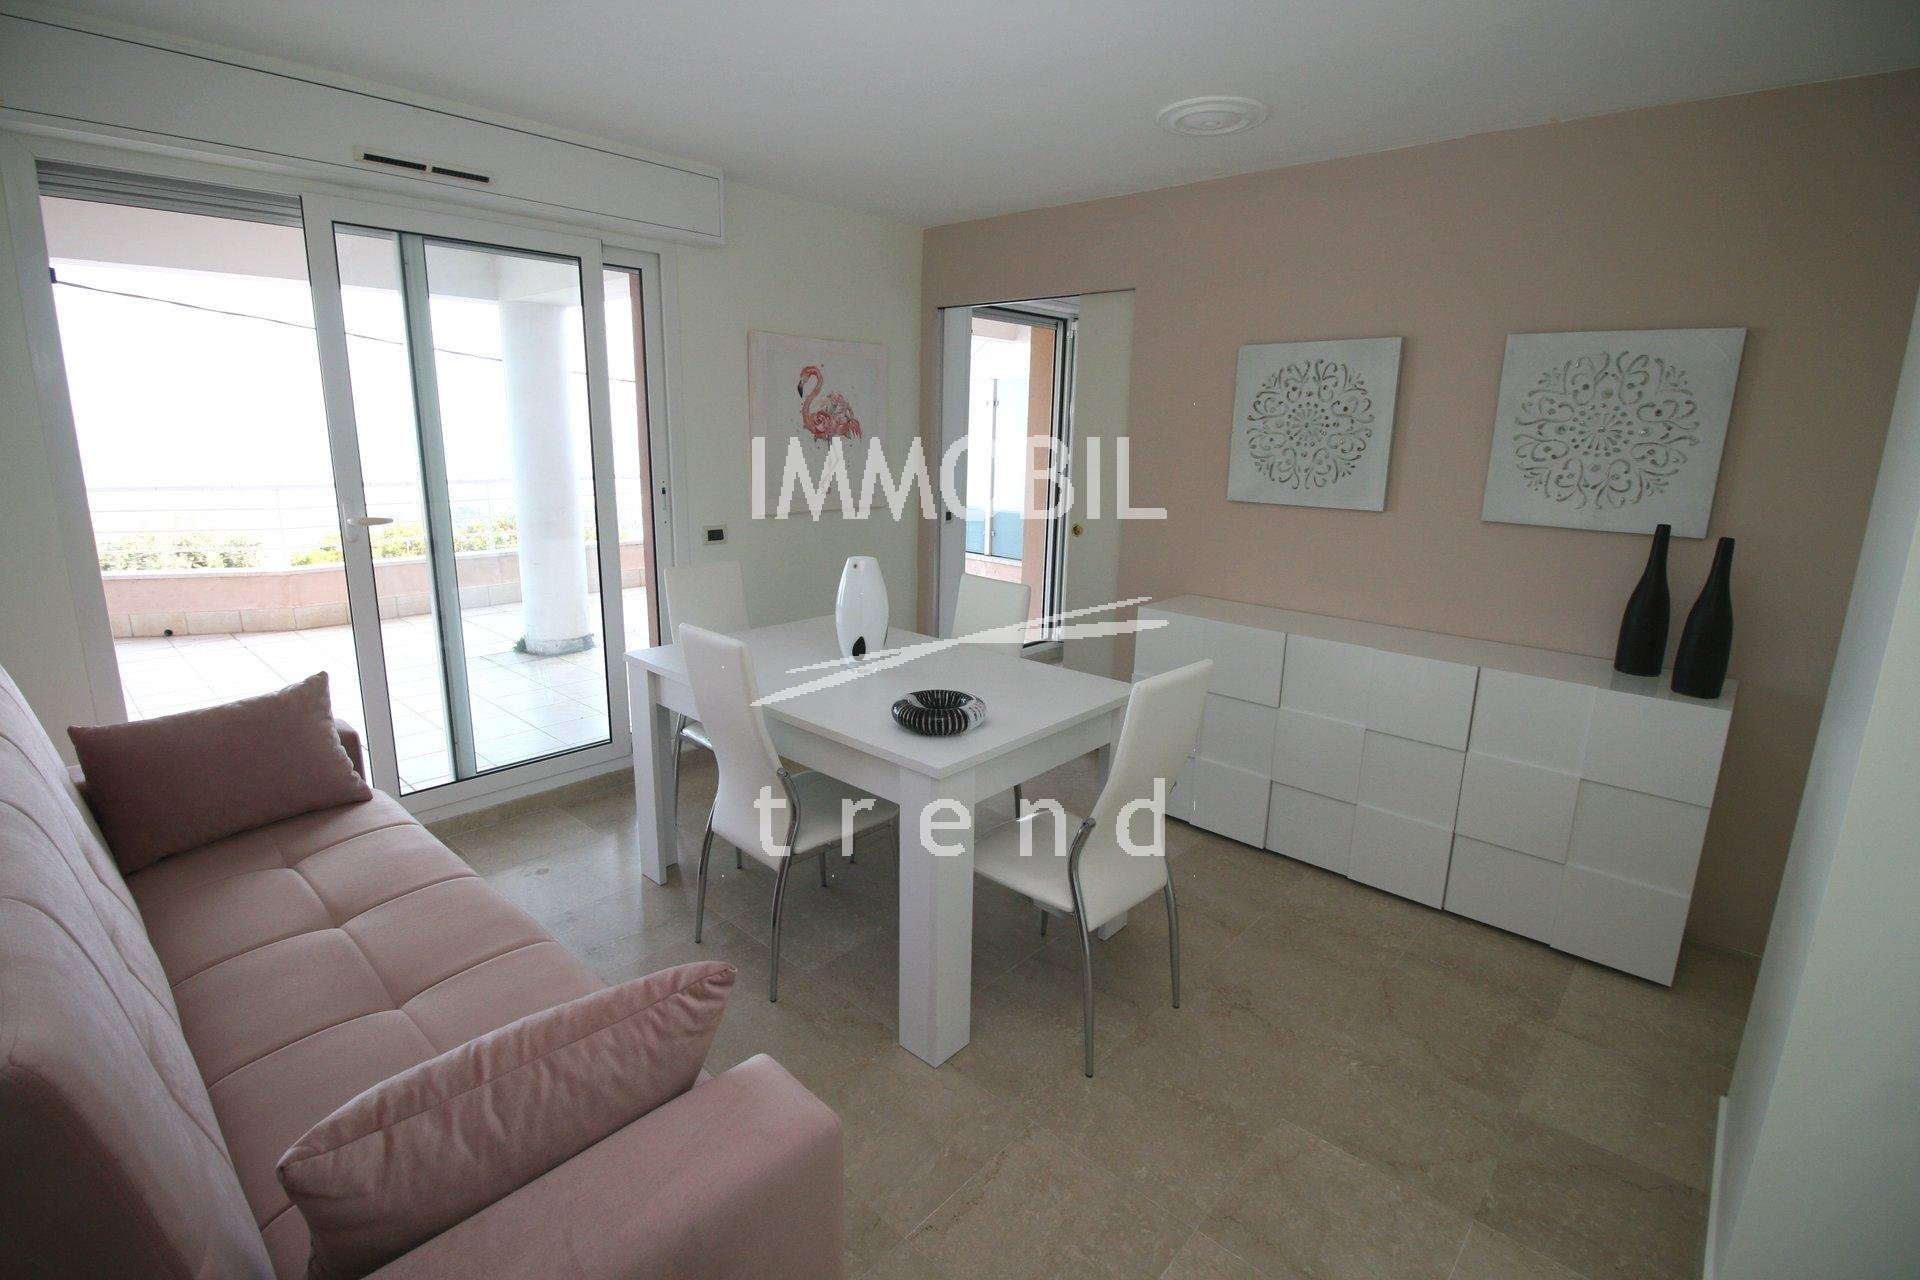 EXCLUSIVITE BEAUSOLEIL MONTECARLO VISTA- APPARTEMENT AVEC UNE TERRASSE DE 66 m2. Parking sous sol.